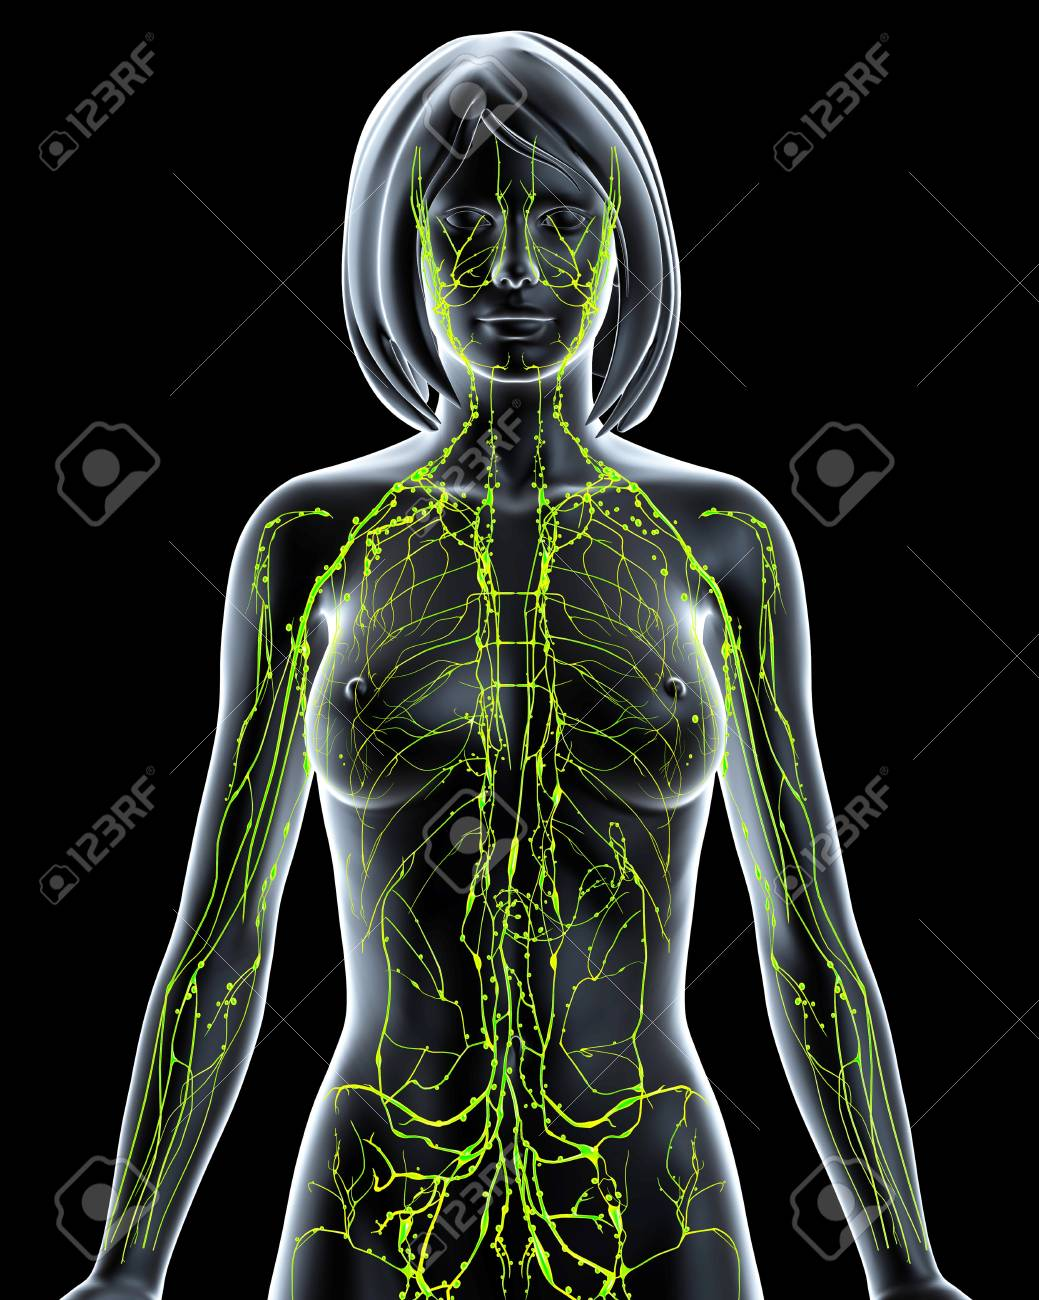 Female Lymphatic System,artwork Stock Photo, Picture And Royalty ...